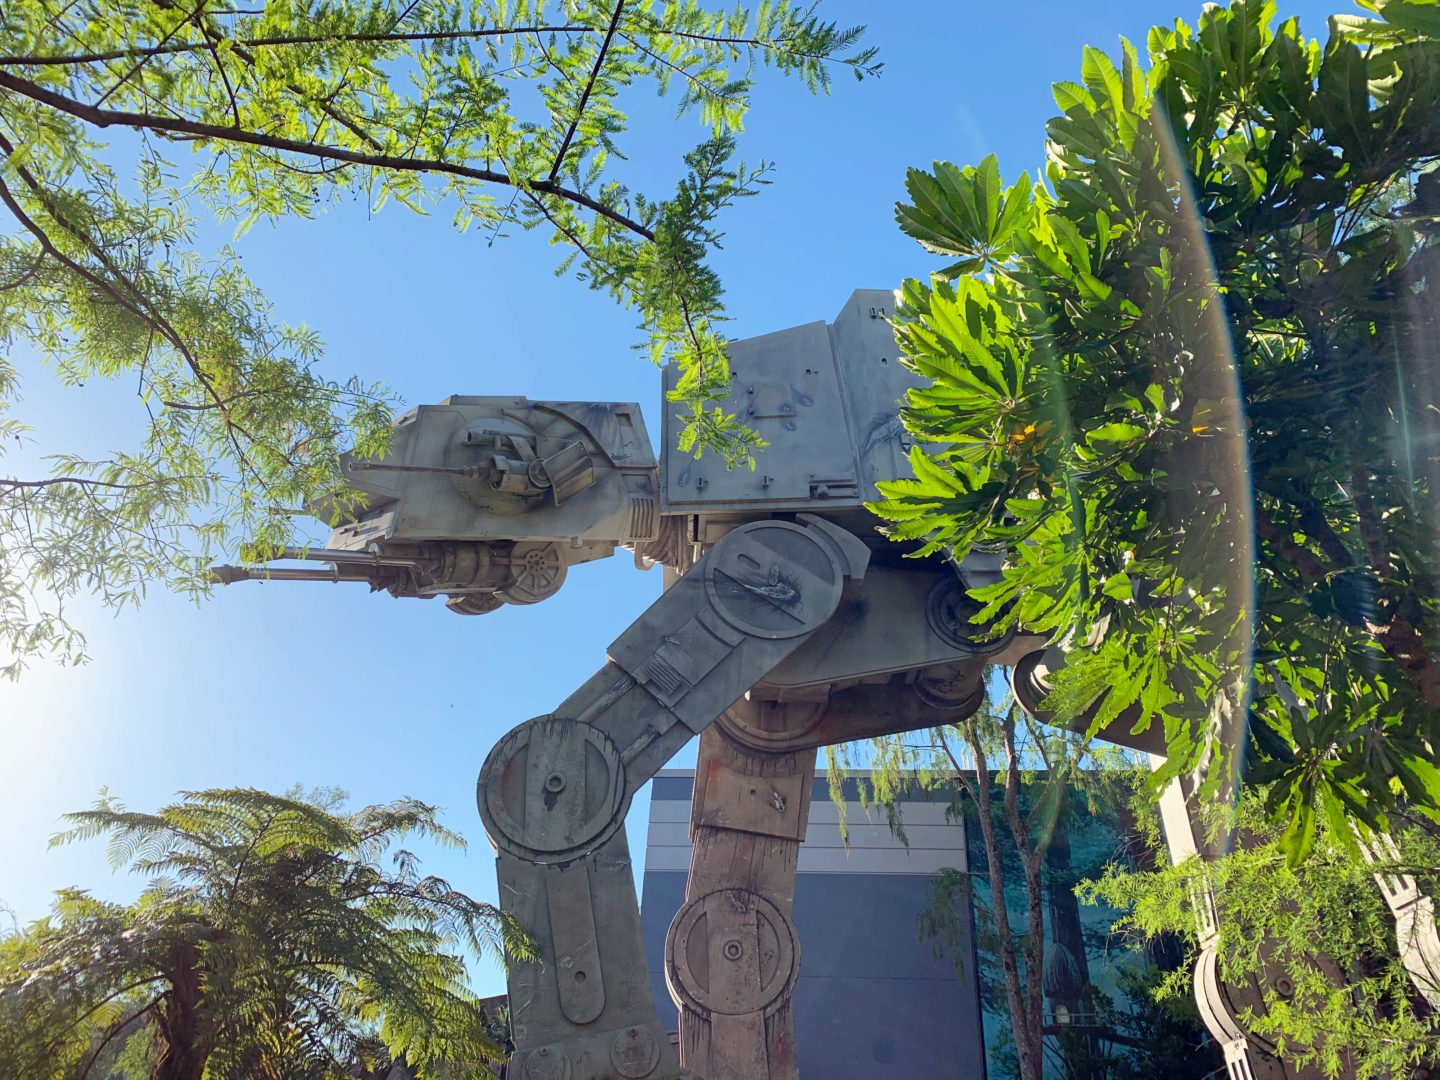 Star Wars Guided Tour, Hollywood Studios Orlando